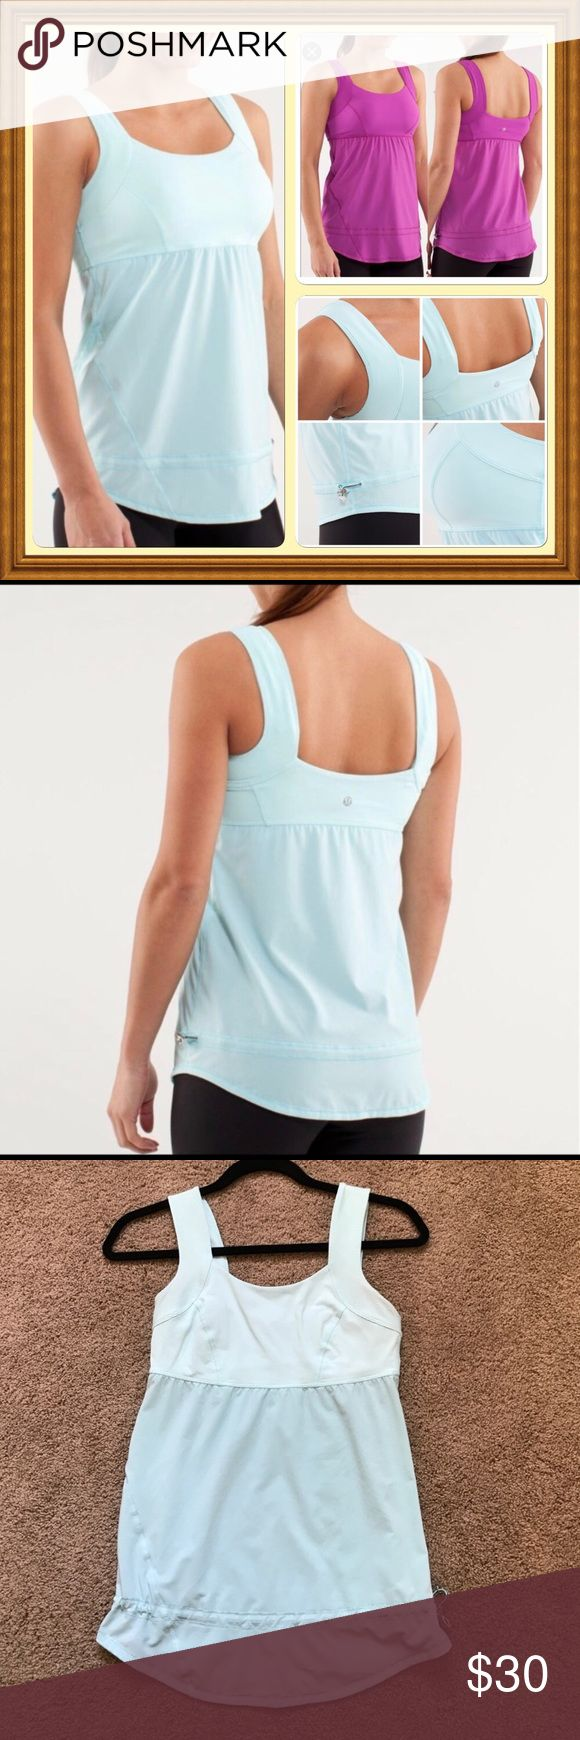 Bundle of 2 Lululemon Chase me Tanks Beautiful magenta and sea-foam colors!  Excellent condition- drawstring bottom so hides the stomach. Layer over your favorite sports bra. Open back shows strappy sports bras really well! lululemon athletica Tops Tank Tops